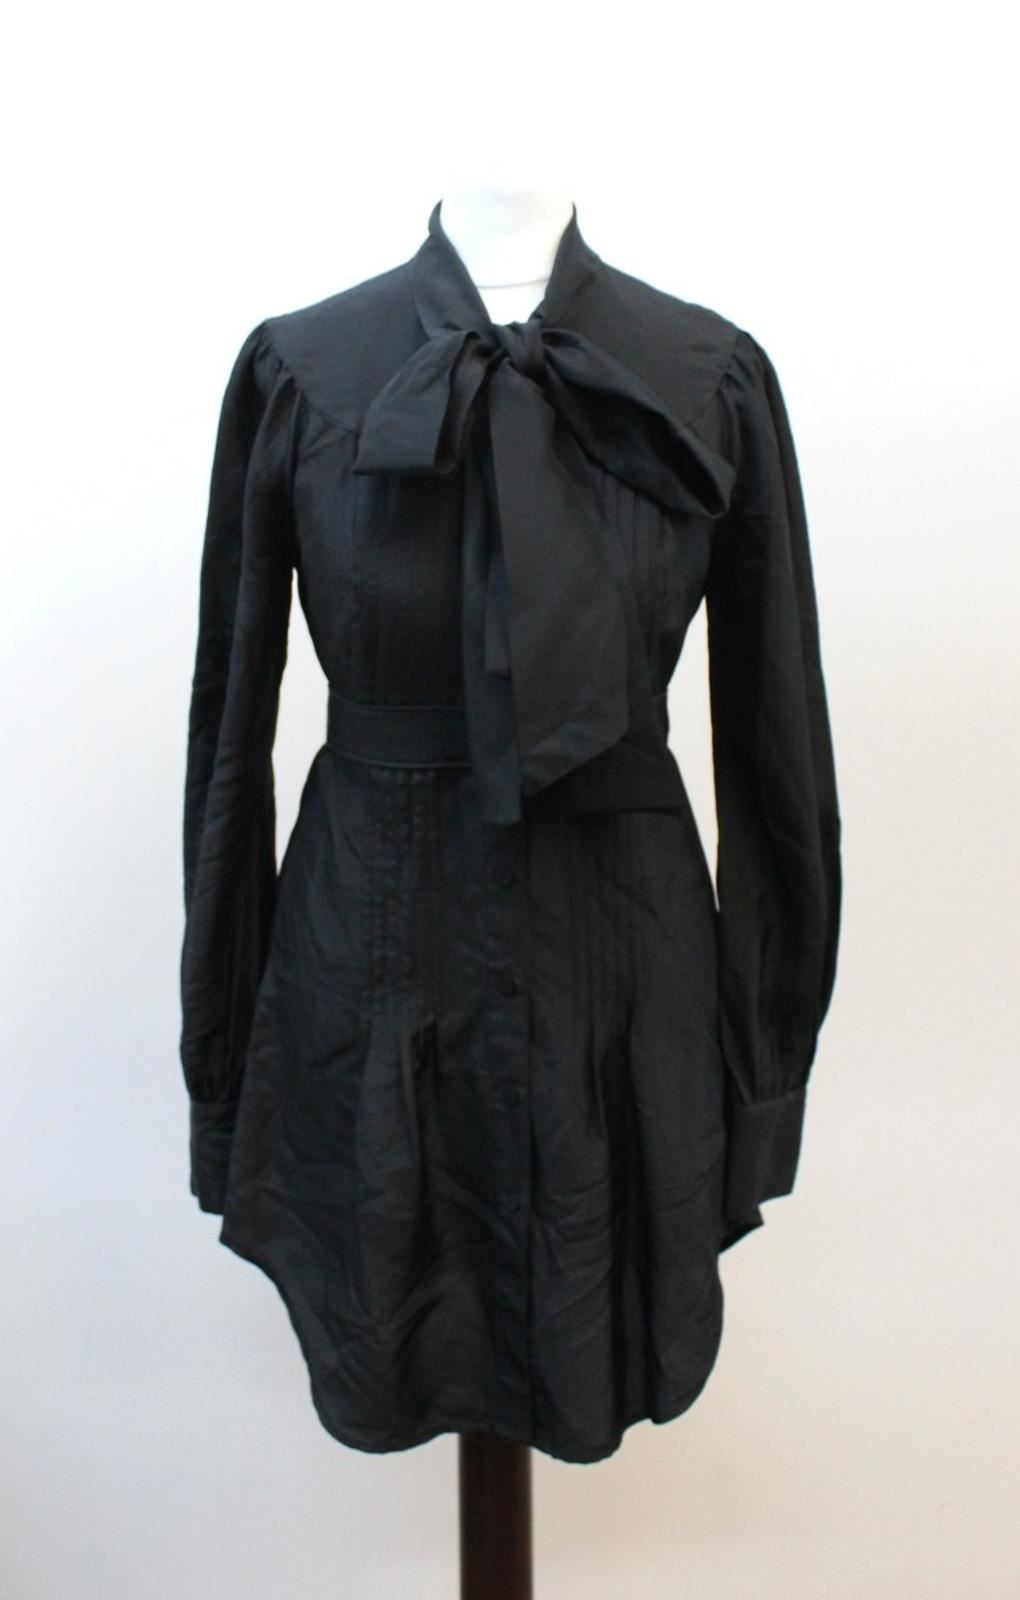 TED-BAKER-Ladies-Black-Silk-Long-Sleeve-Crew-Neck-Tie-Shirt-Dress-Size-0-UK4